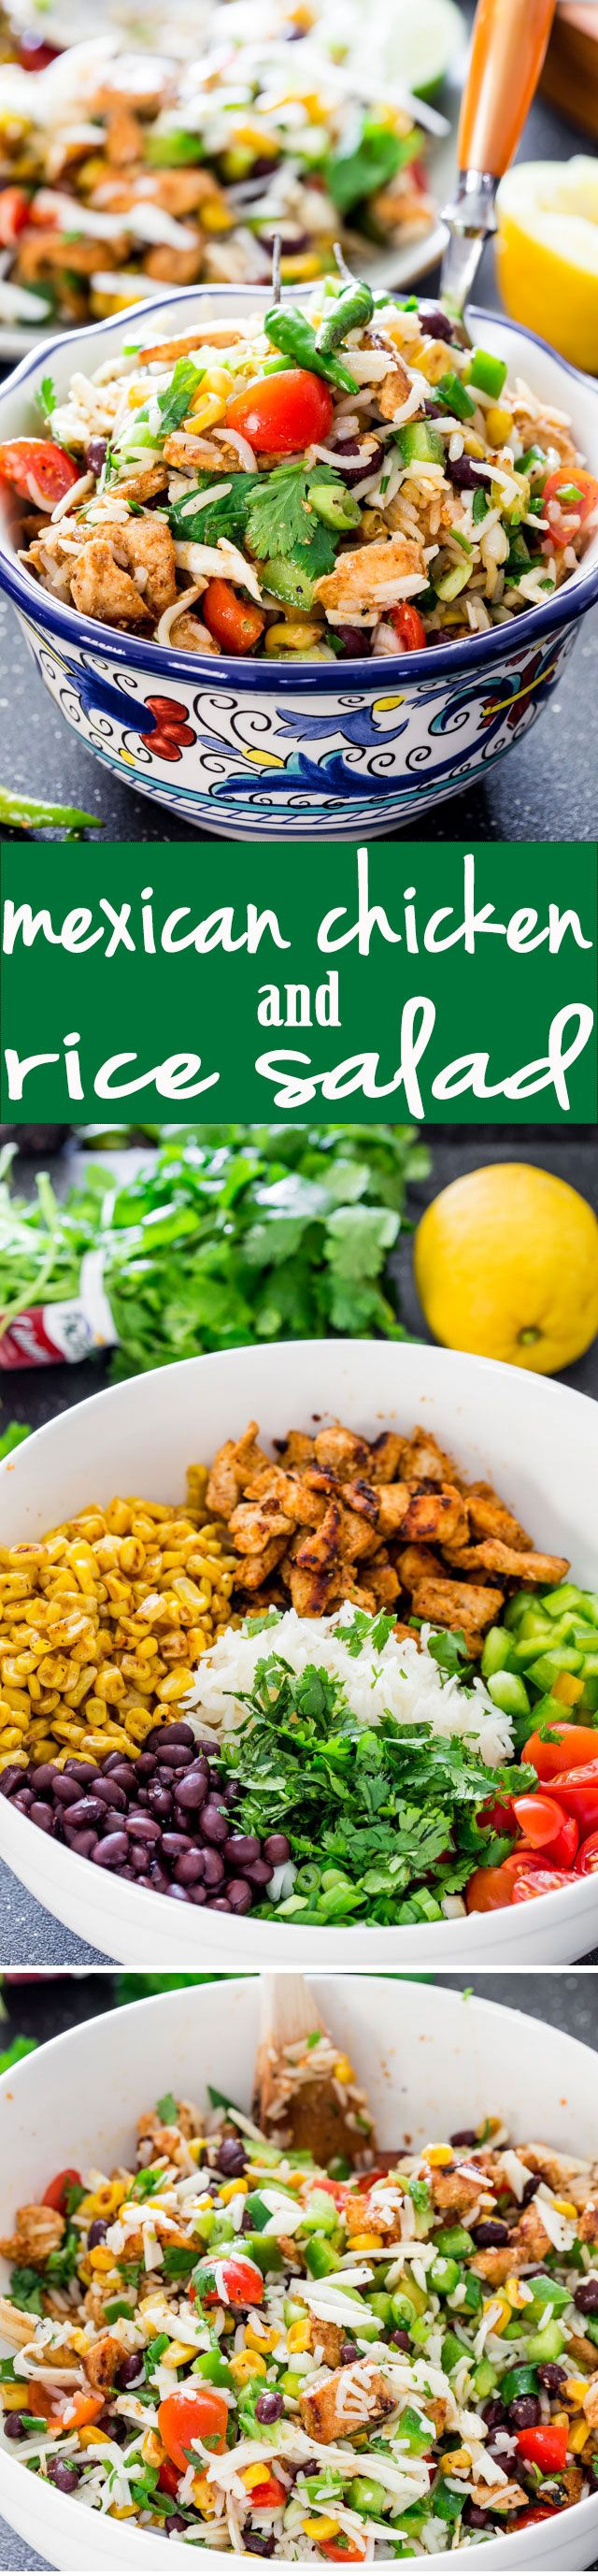 Mexican Chicken and Rice Salad - a salad loaded with black beans, chicken, corn and rice. Totally addicting and makes the perfect dinner for a busy weeknight.